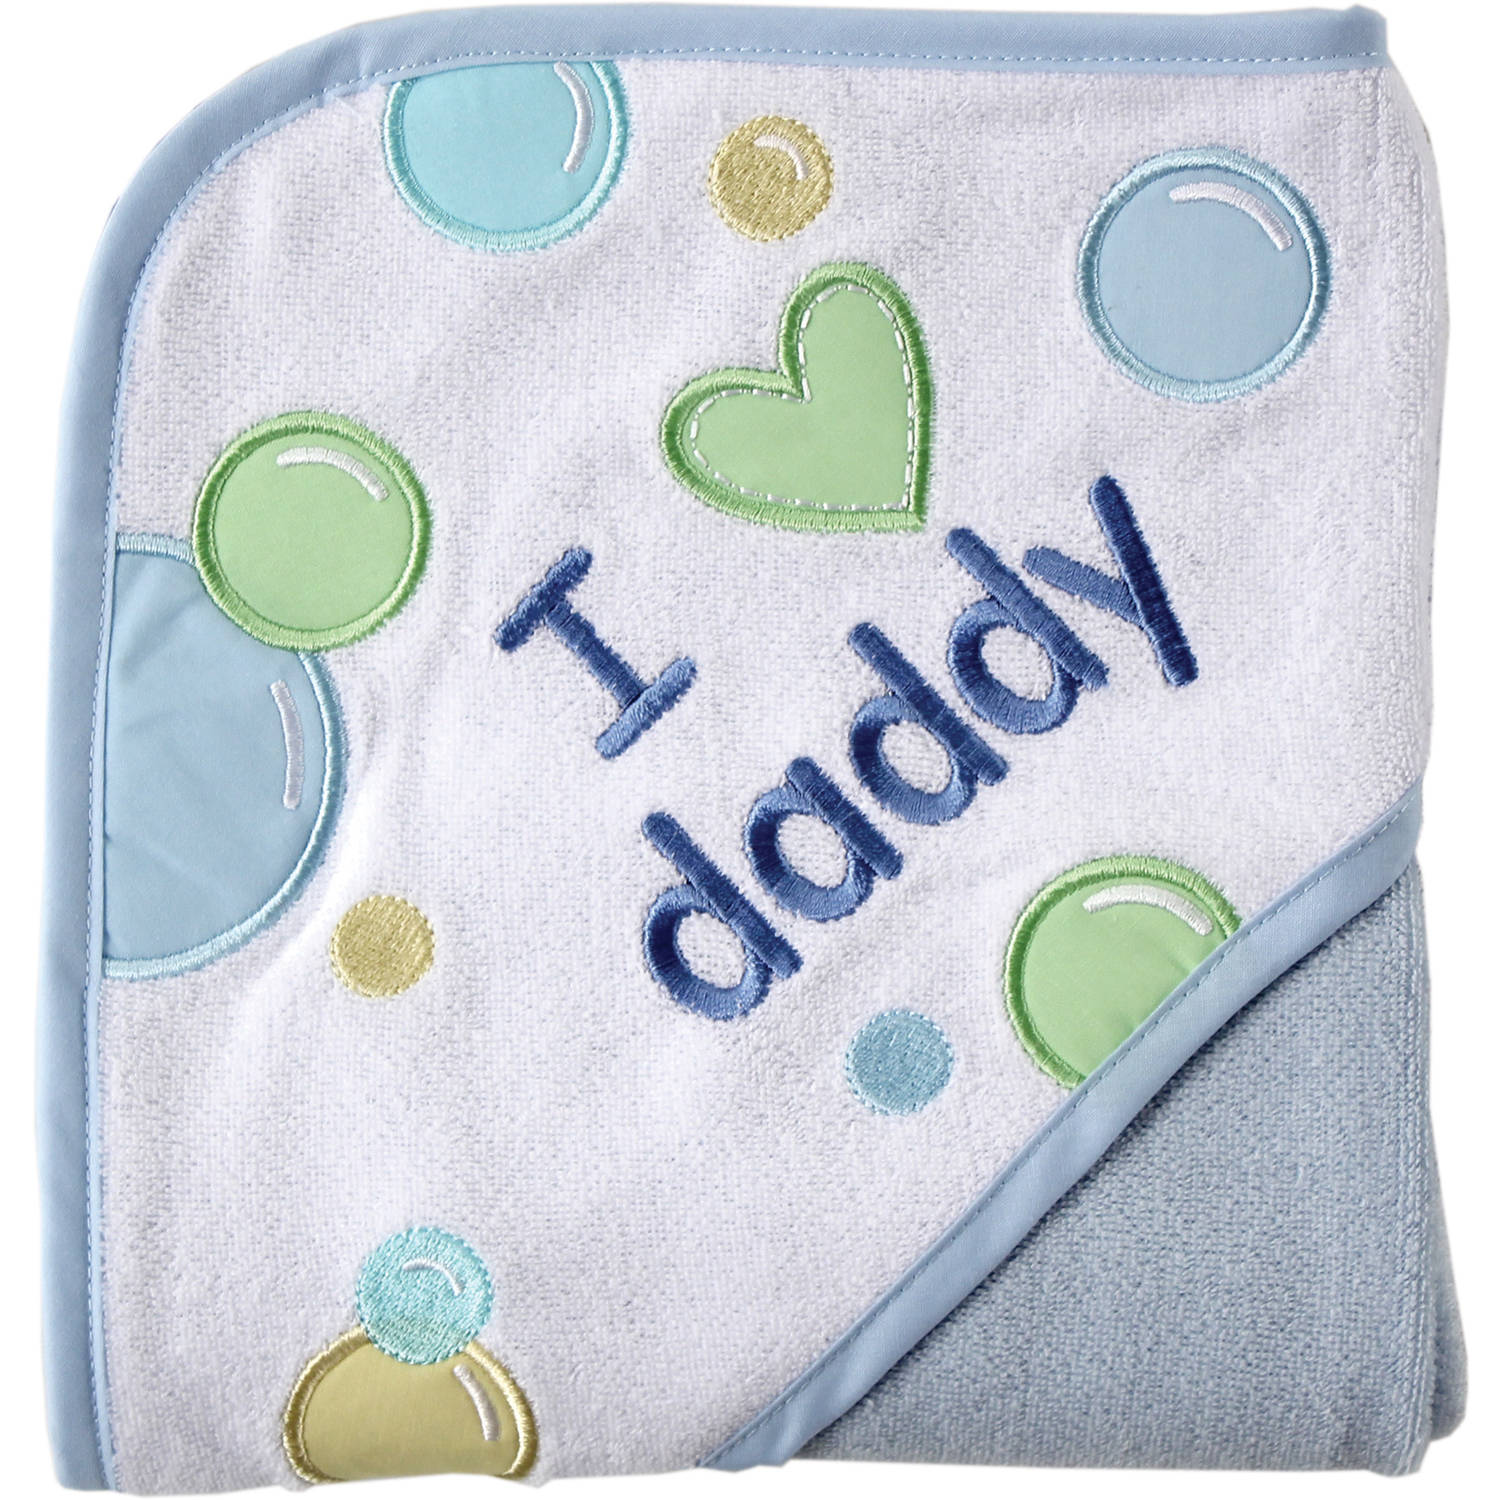 Luvable Friends Hooded Towel, I Love Applique, Choose Your Color